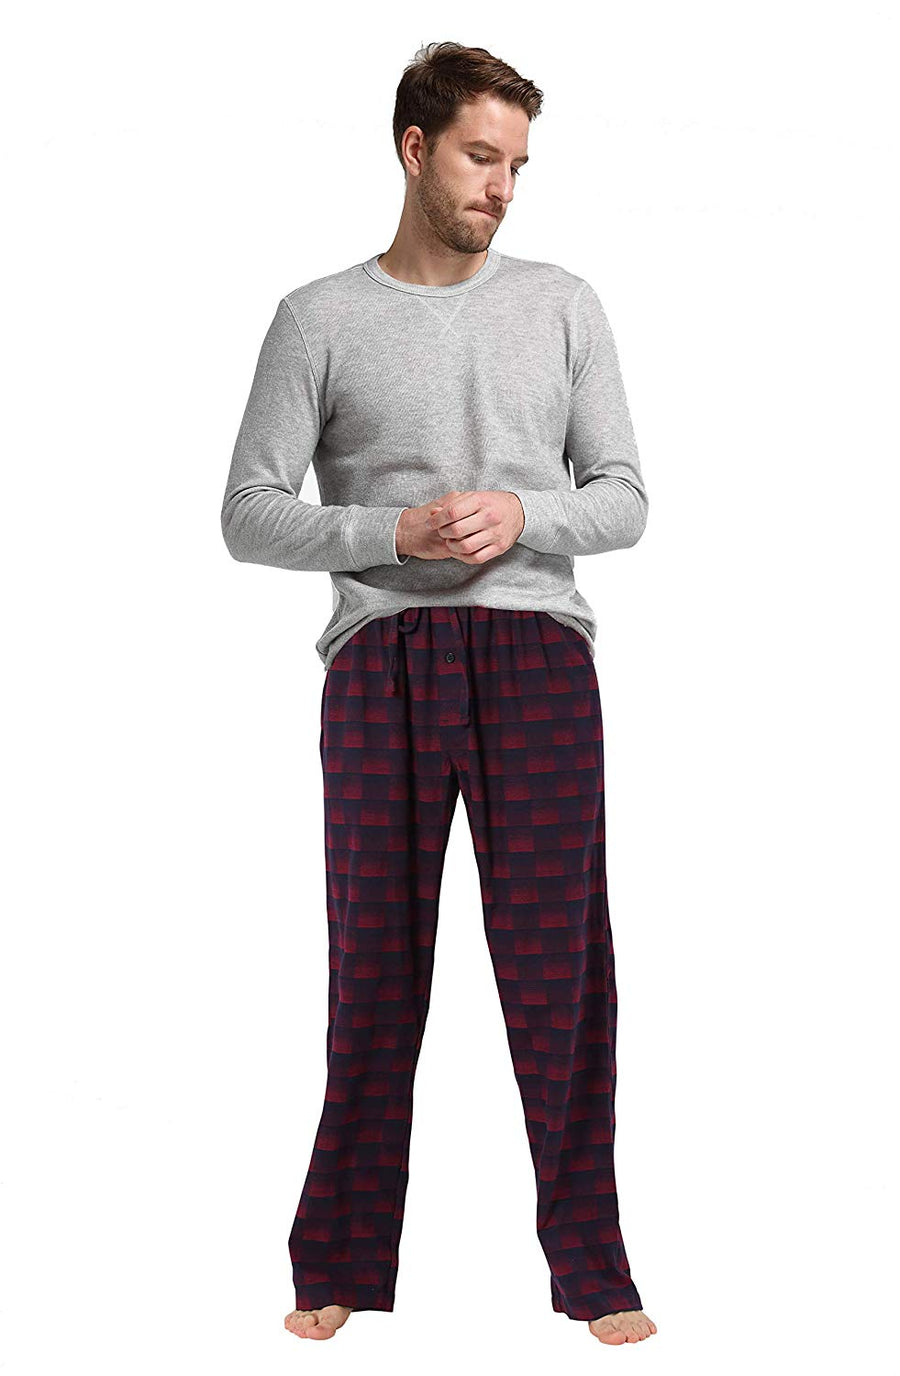 CYZ Men's Holiday Pajama Gift Set Cotton Rib Shirt with Flannel Pajama Pants